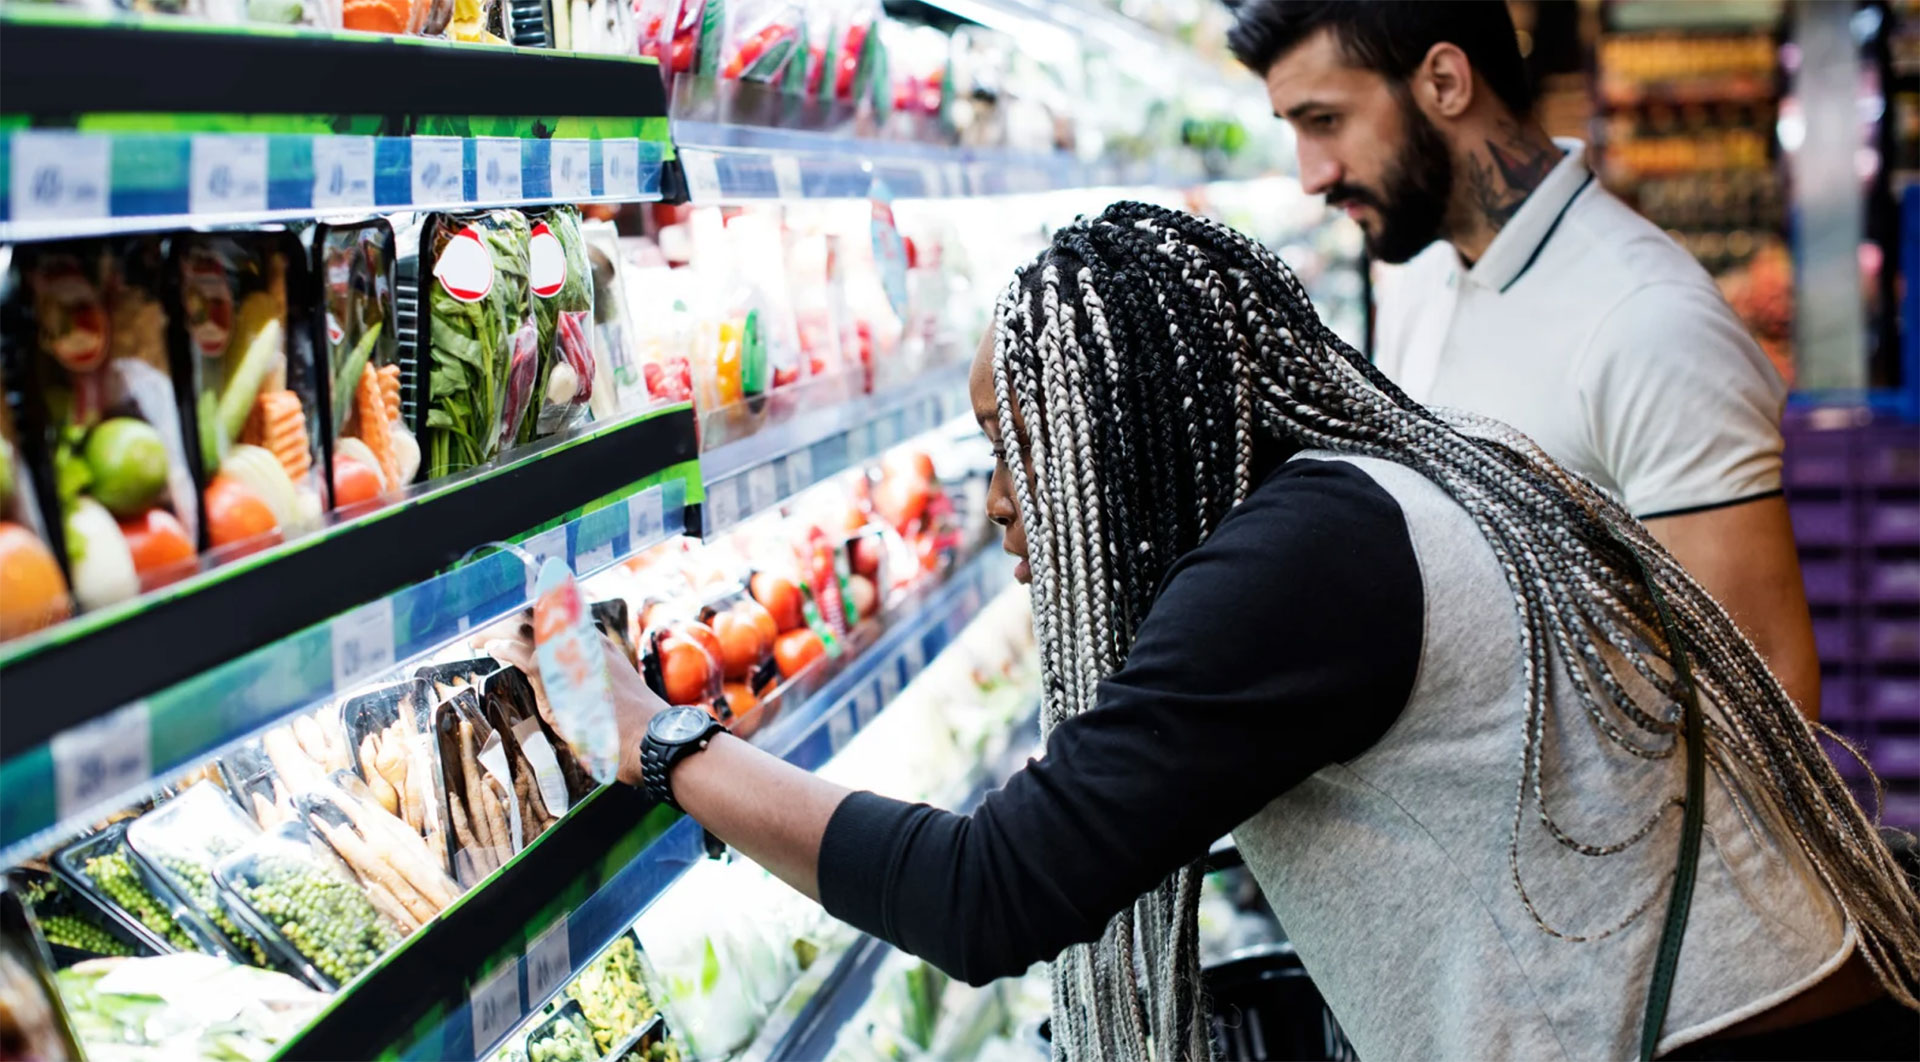 Canada's big three grocers see shifting shopping habits as pandemic restrictions ease